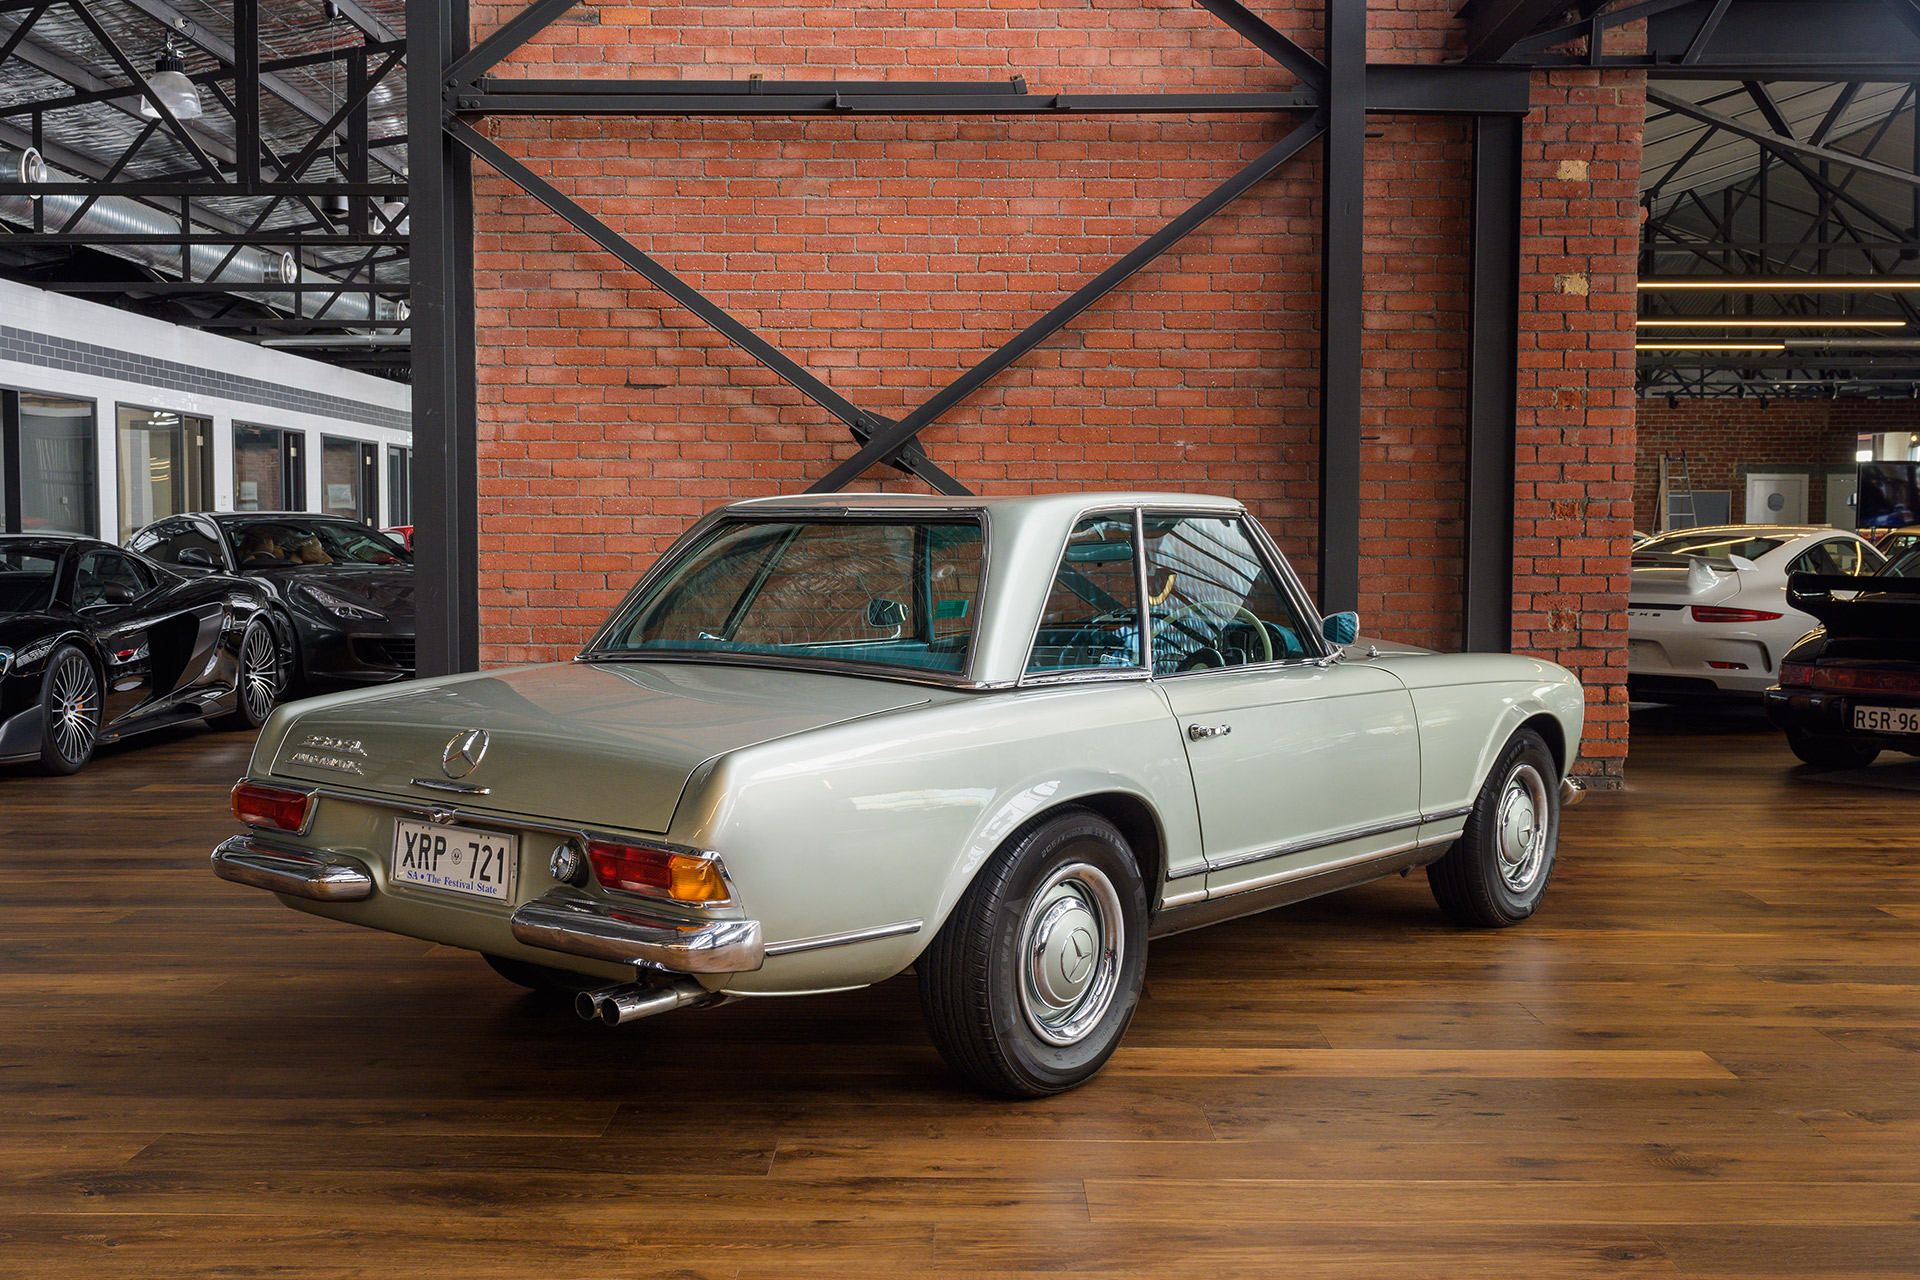 1967 Mercedes Benz 250SL California Coupe - Richmonds ...